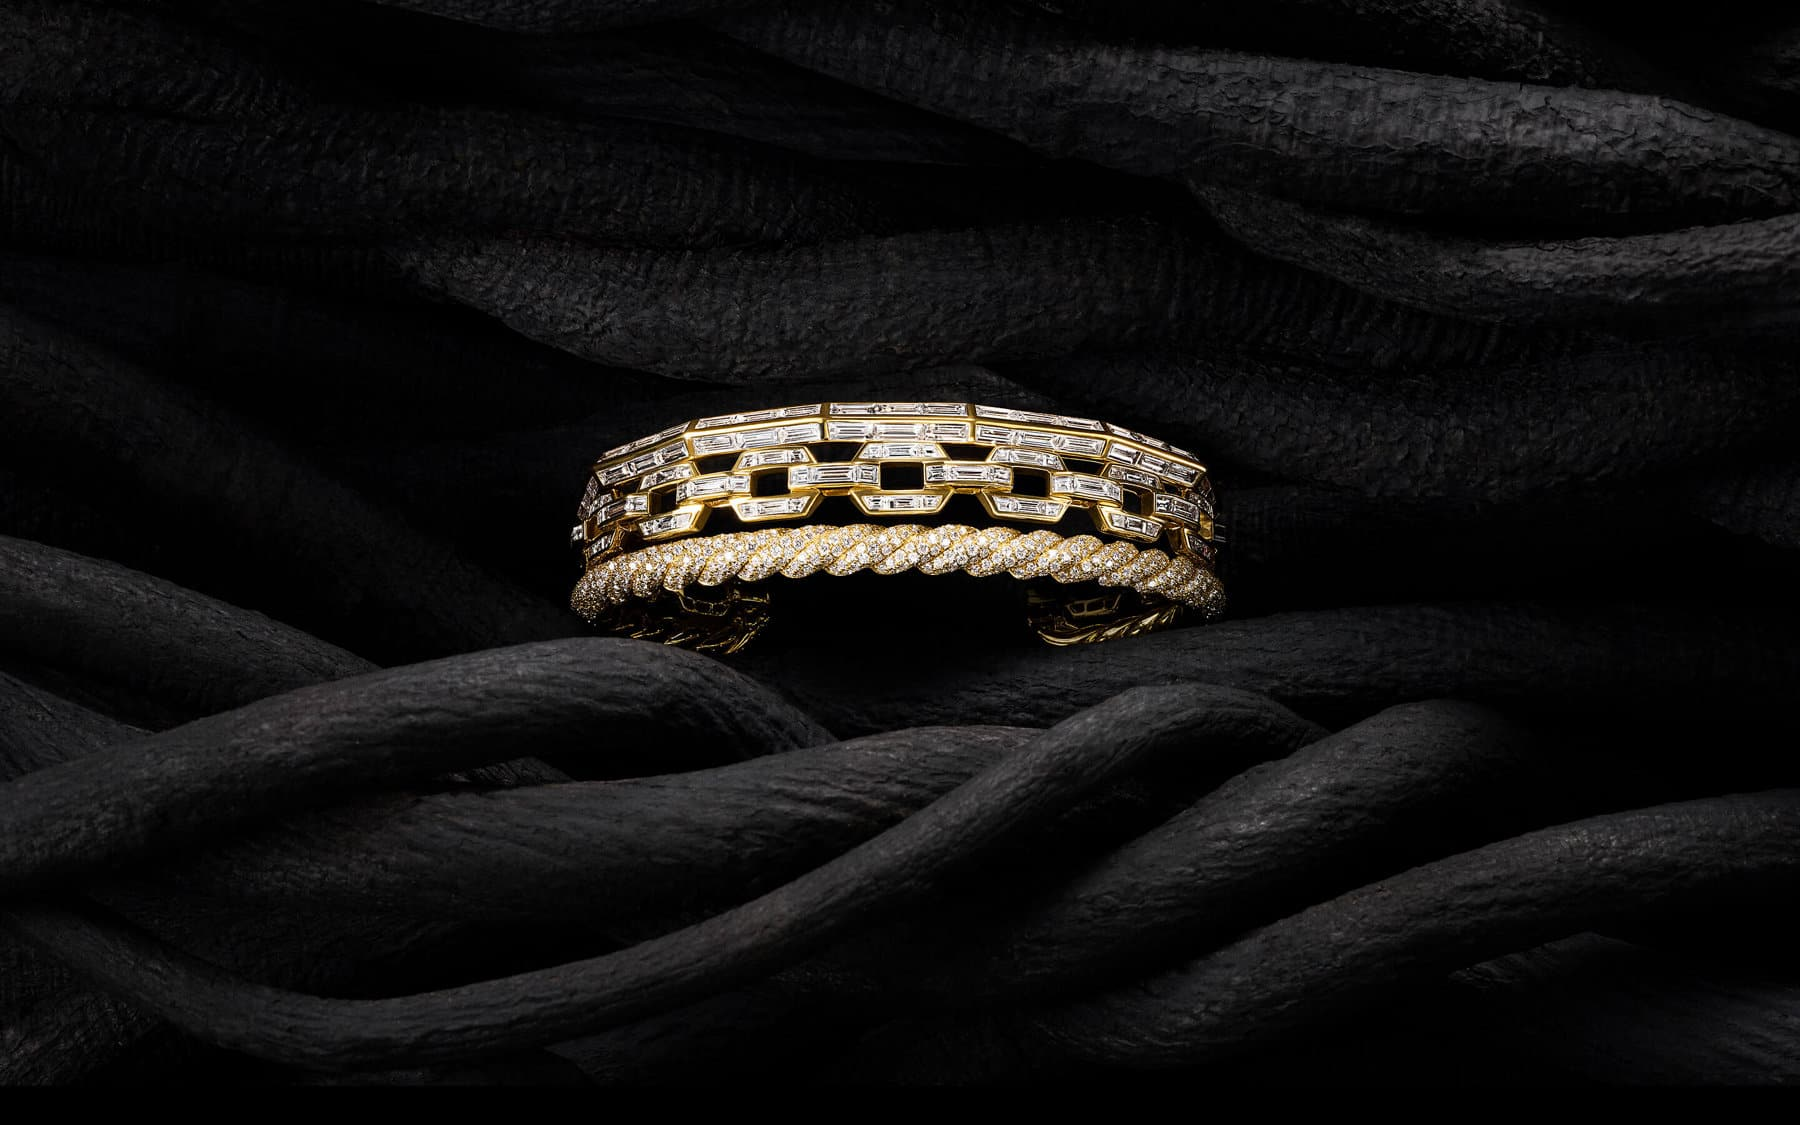 A color photo shows a David Yurman High Jewelry Stax cuff bracelet placed in between black-hued vines. The three-row cuff bracelet is crafted from 18K yellow gold encrusted with pavé and baguette white diamonds, and combines a row of faceted metal with a row of oval link chain and a row of Cable.